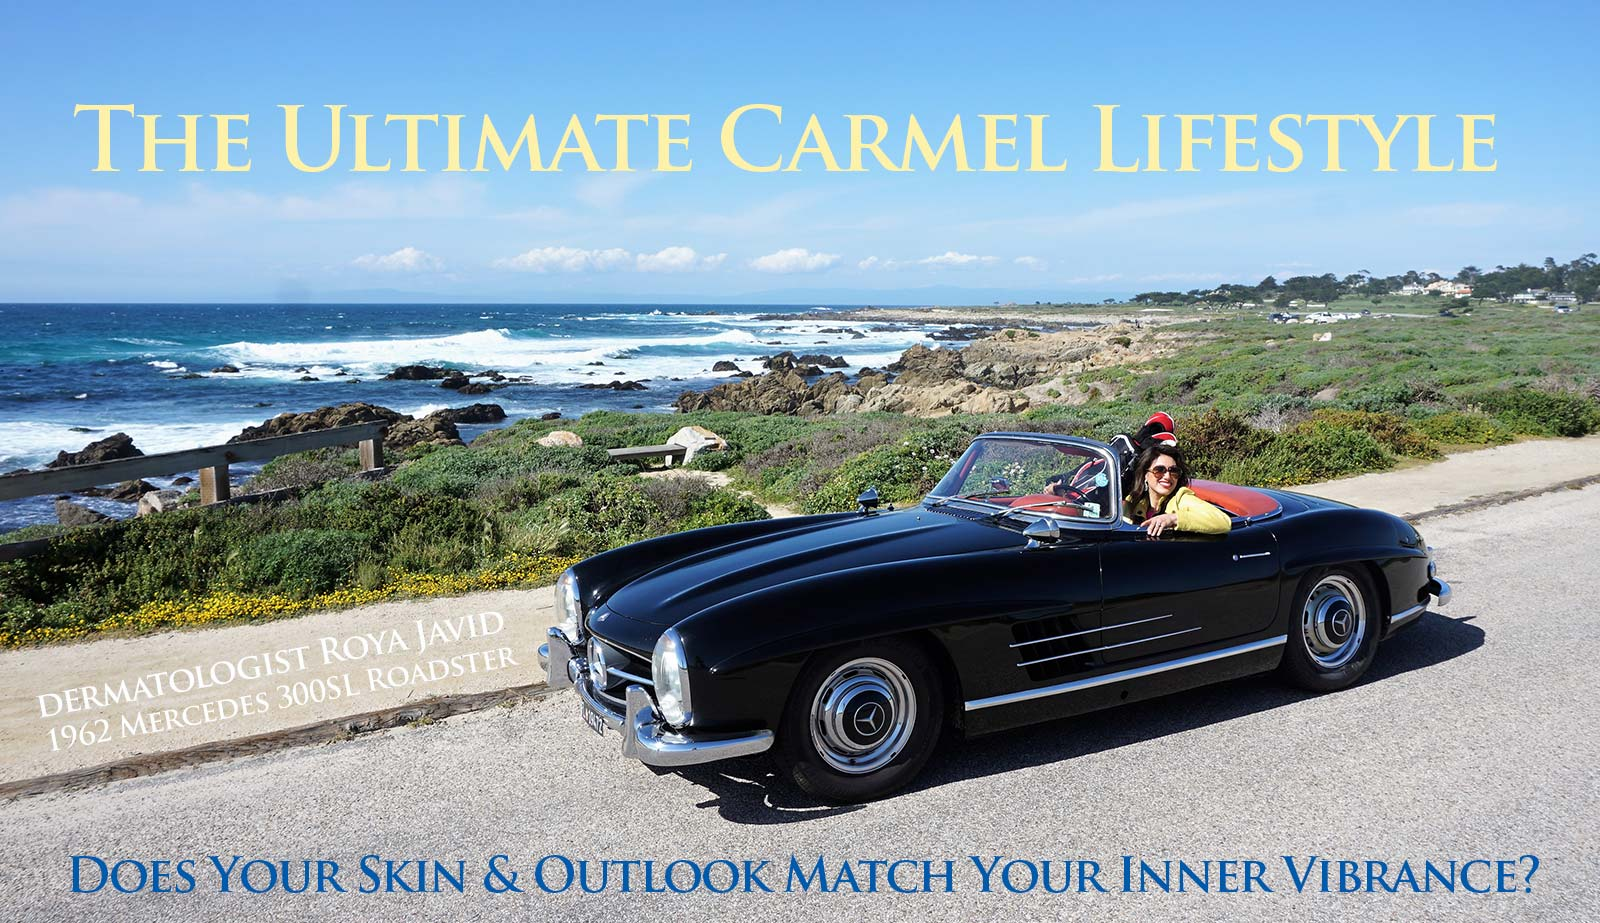 coastal-valley-dermatology-carmel-roya-javid-mercedes-roadster-photo